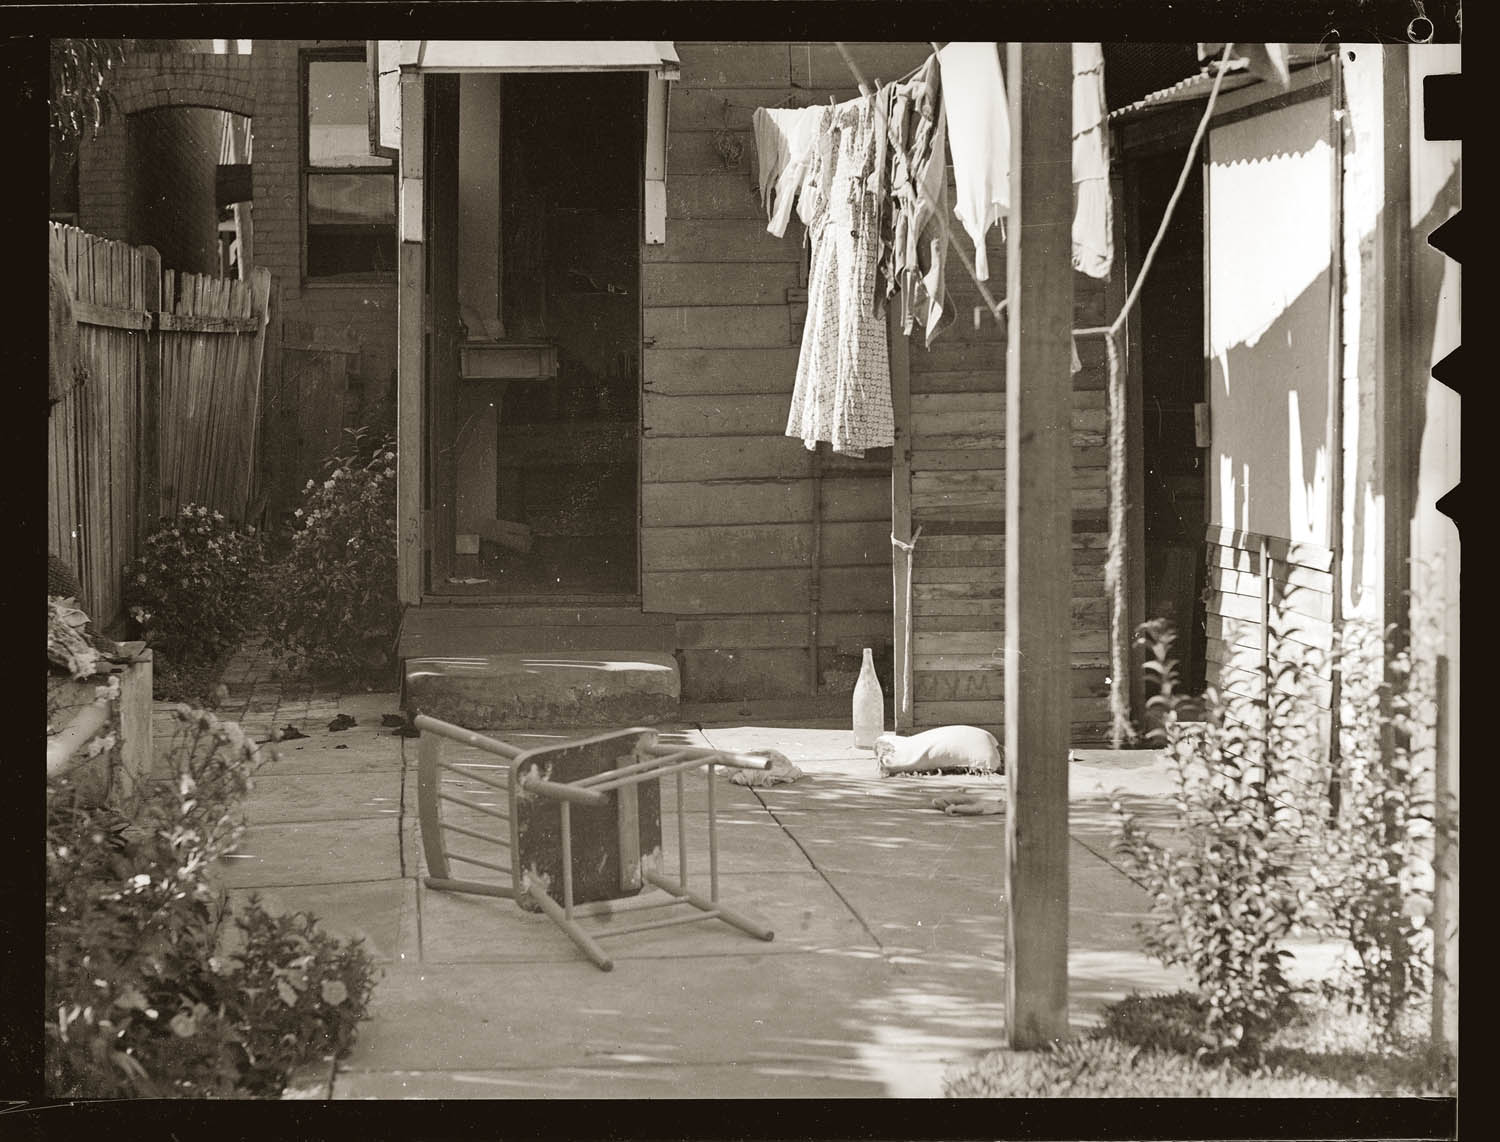 Backyard, washing line, overturned chair. Scene of attempted suicide, North Sydney 1948.